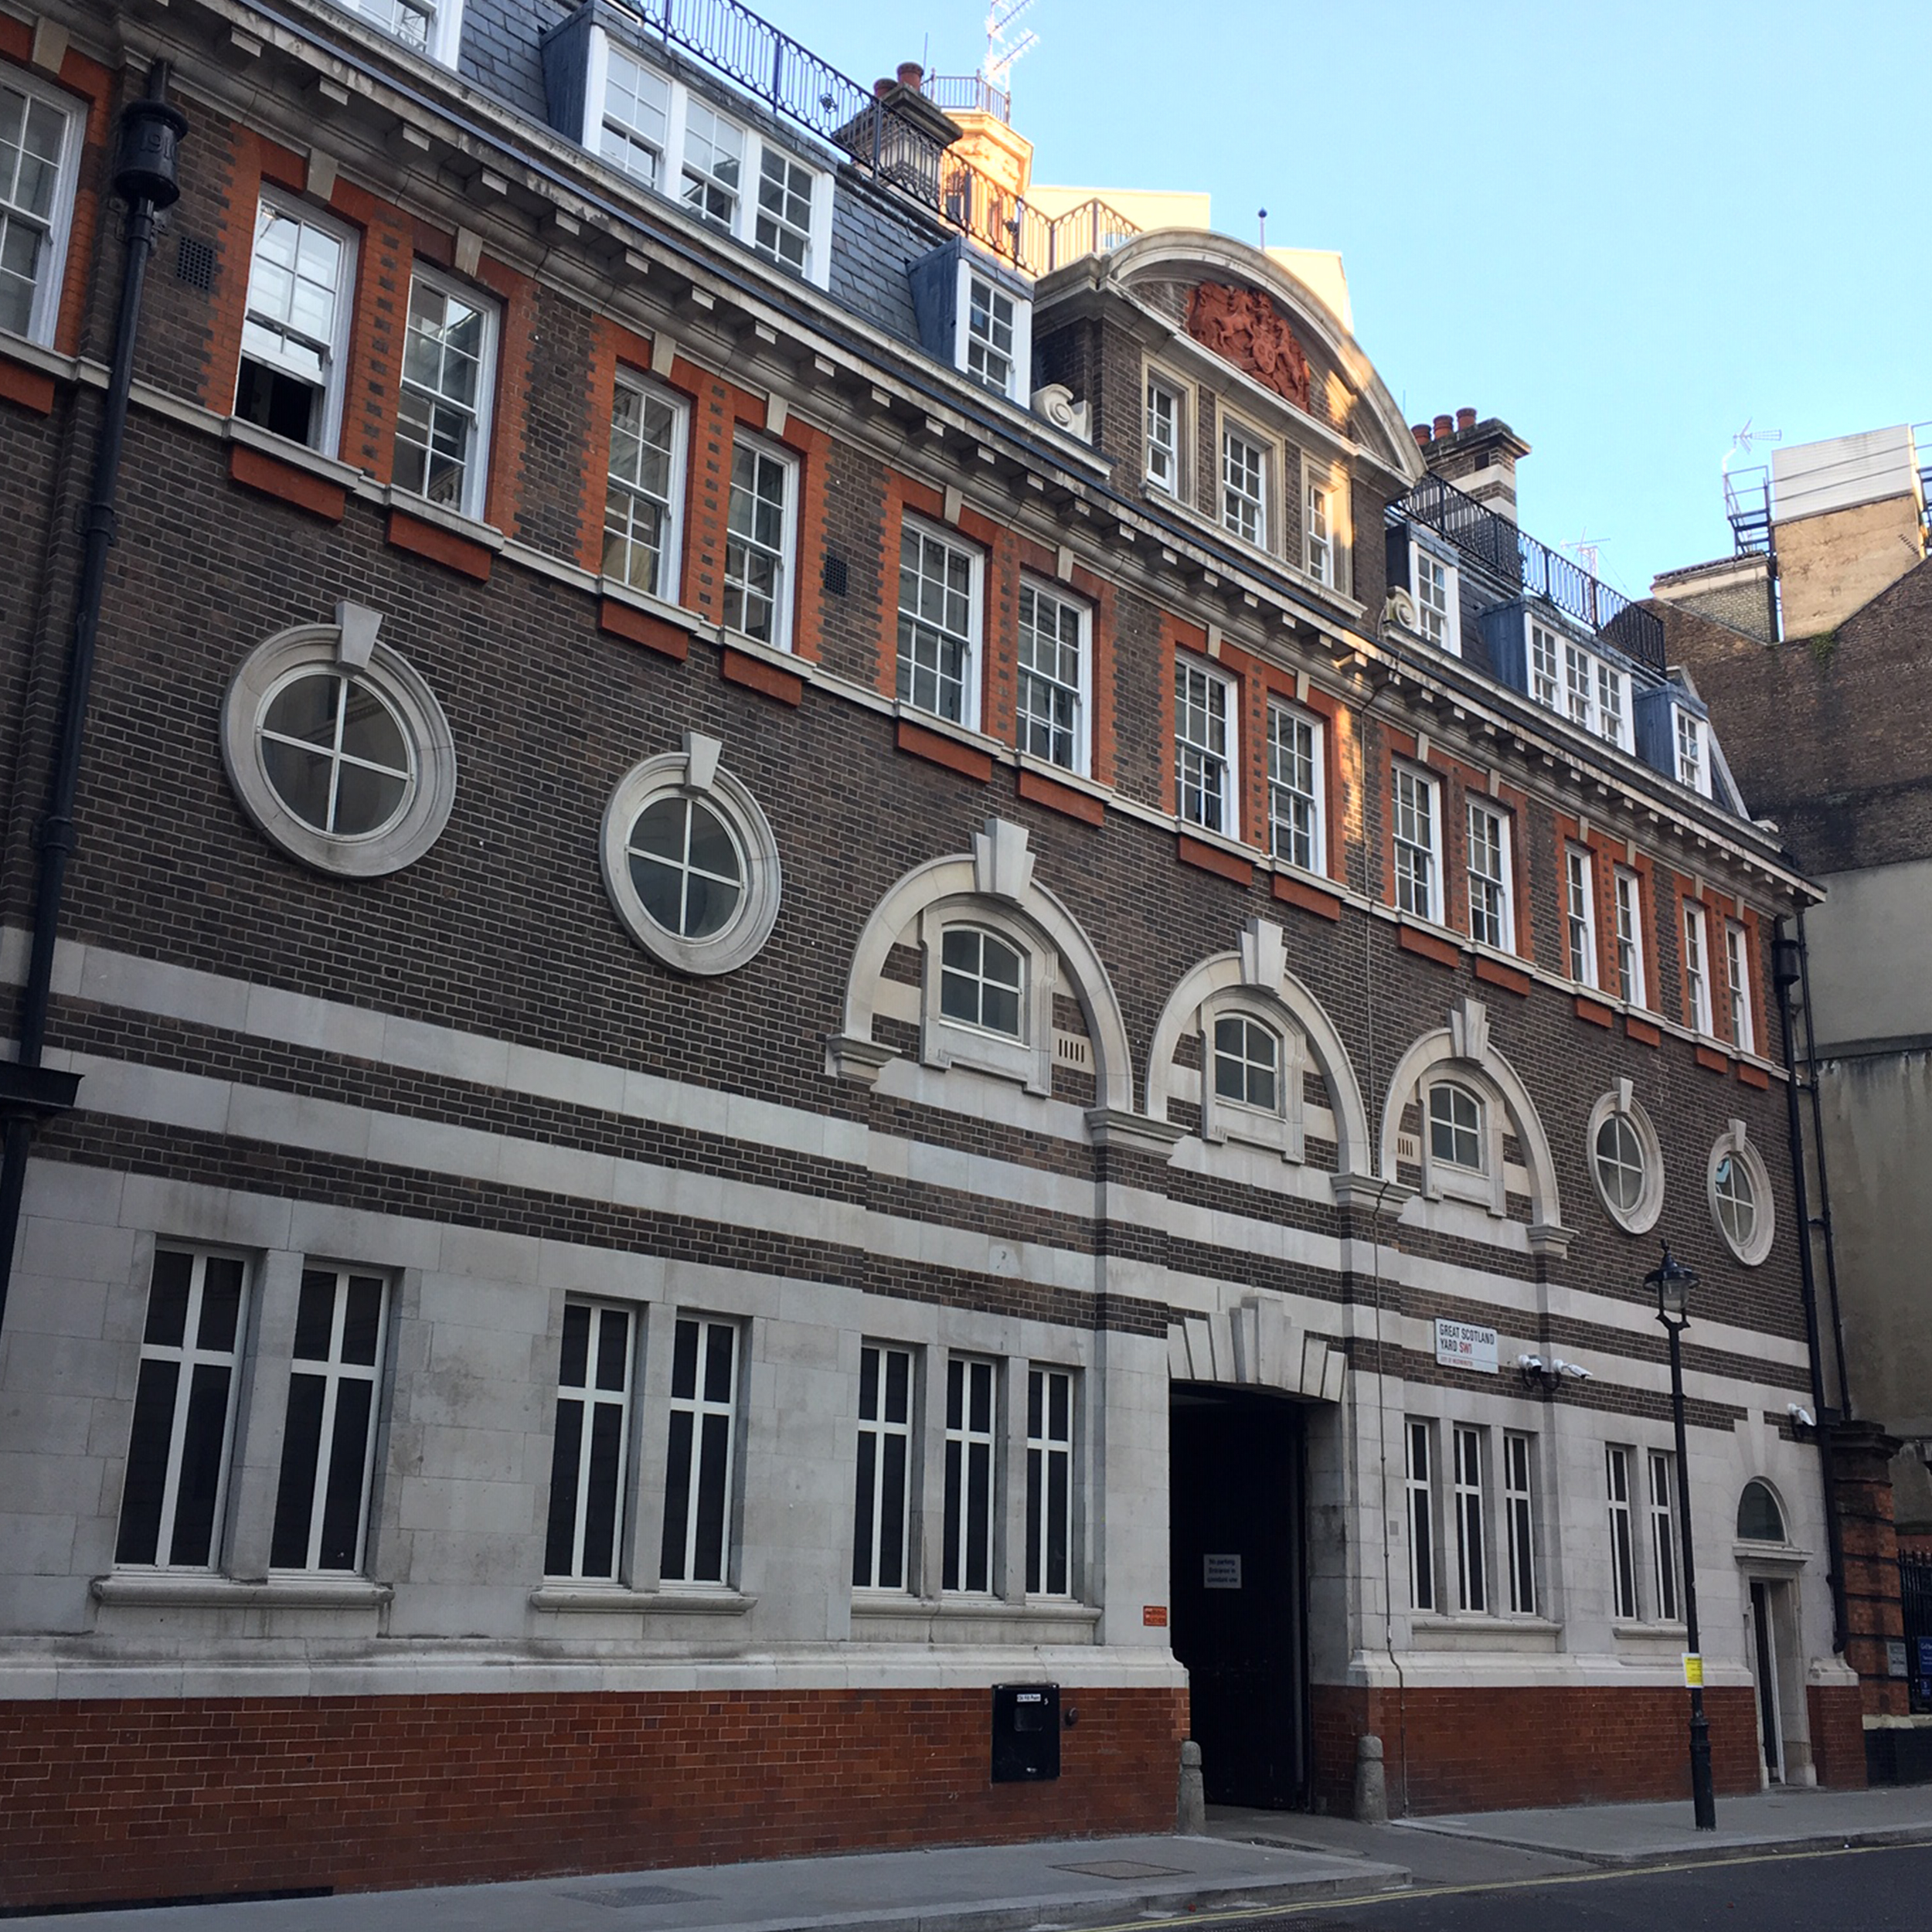 Heritage building in central London after axis carried out refurbishment works